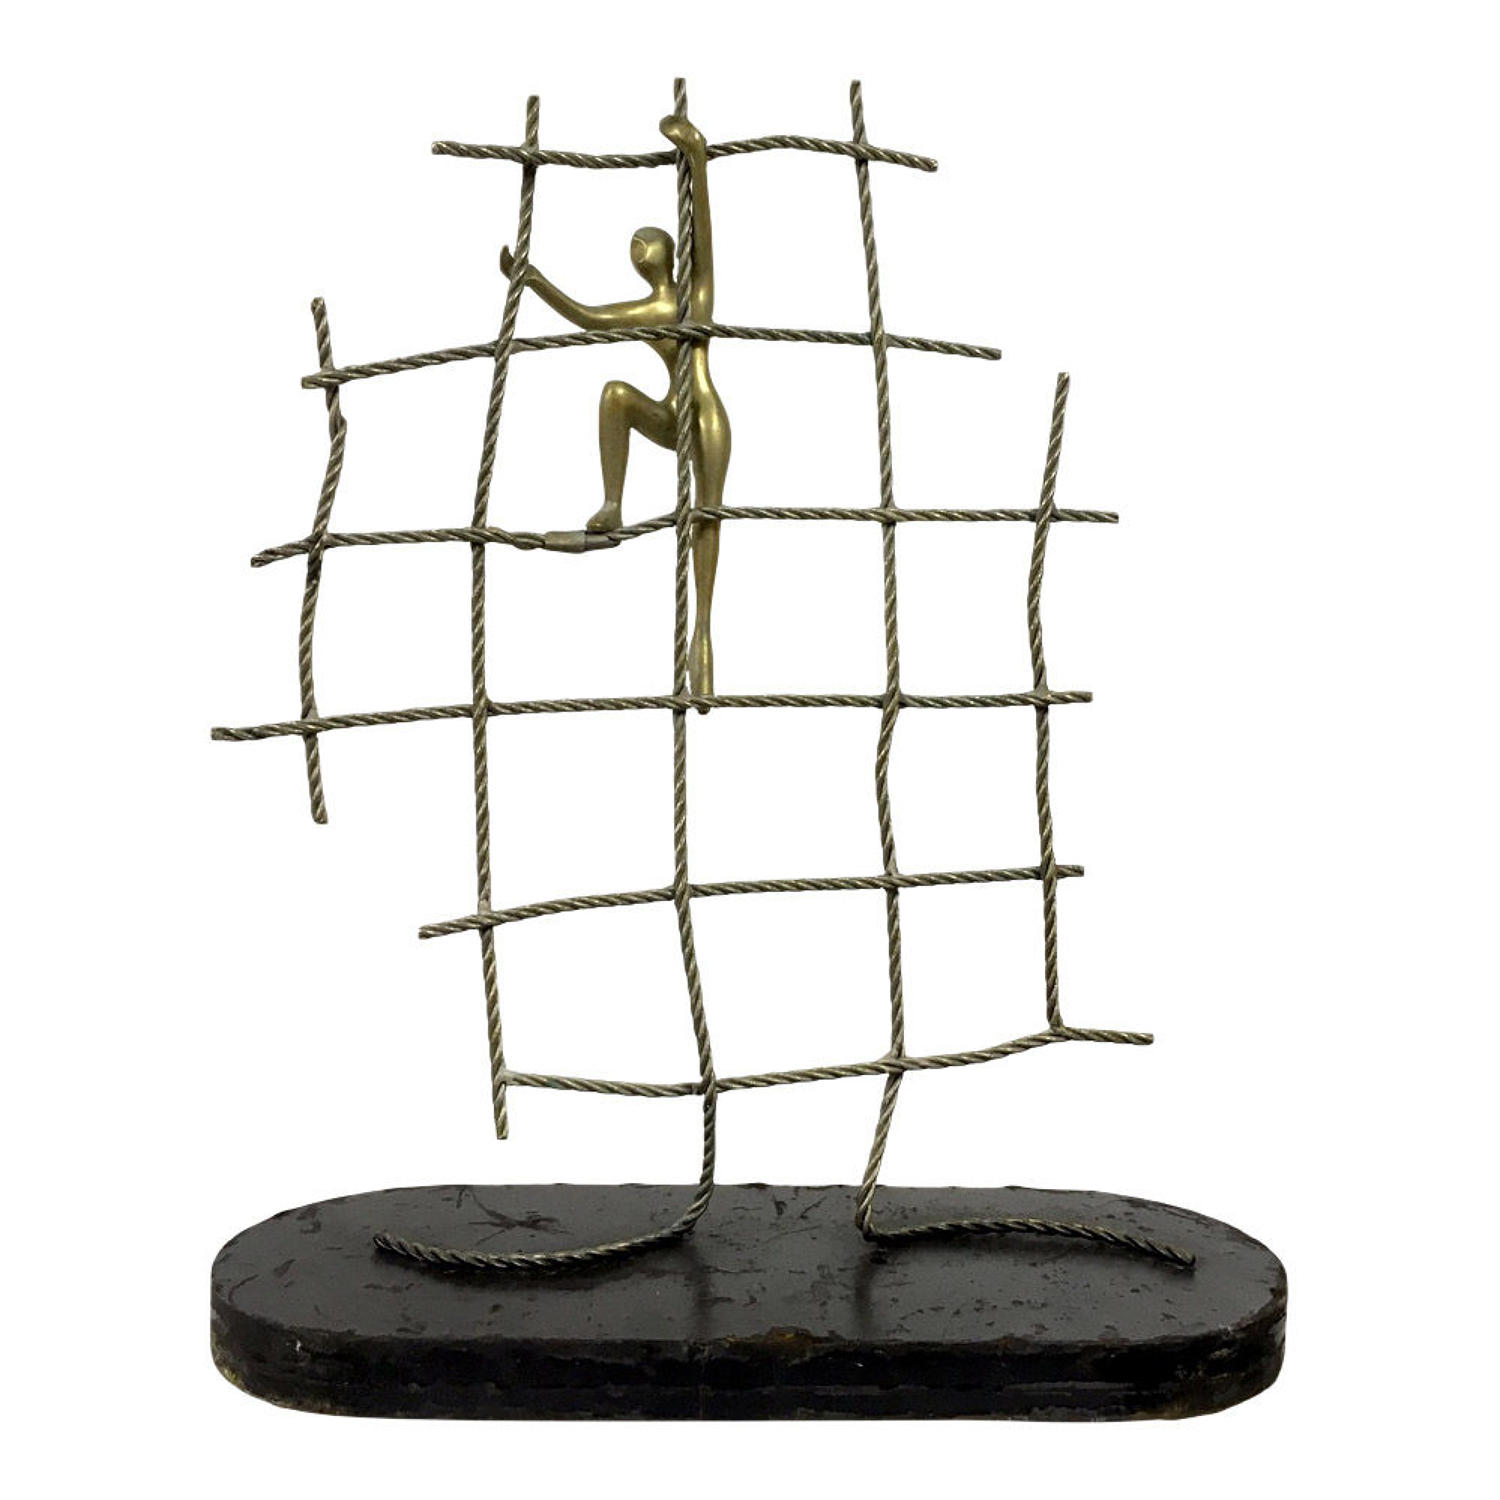 Abstract brass figure climbing up a net